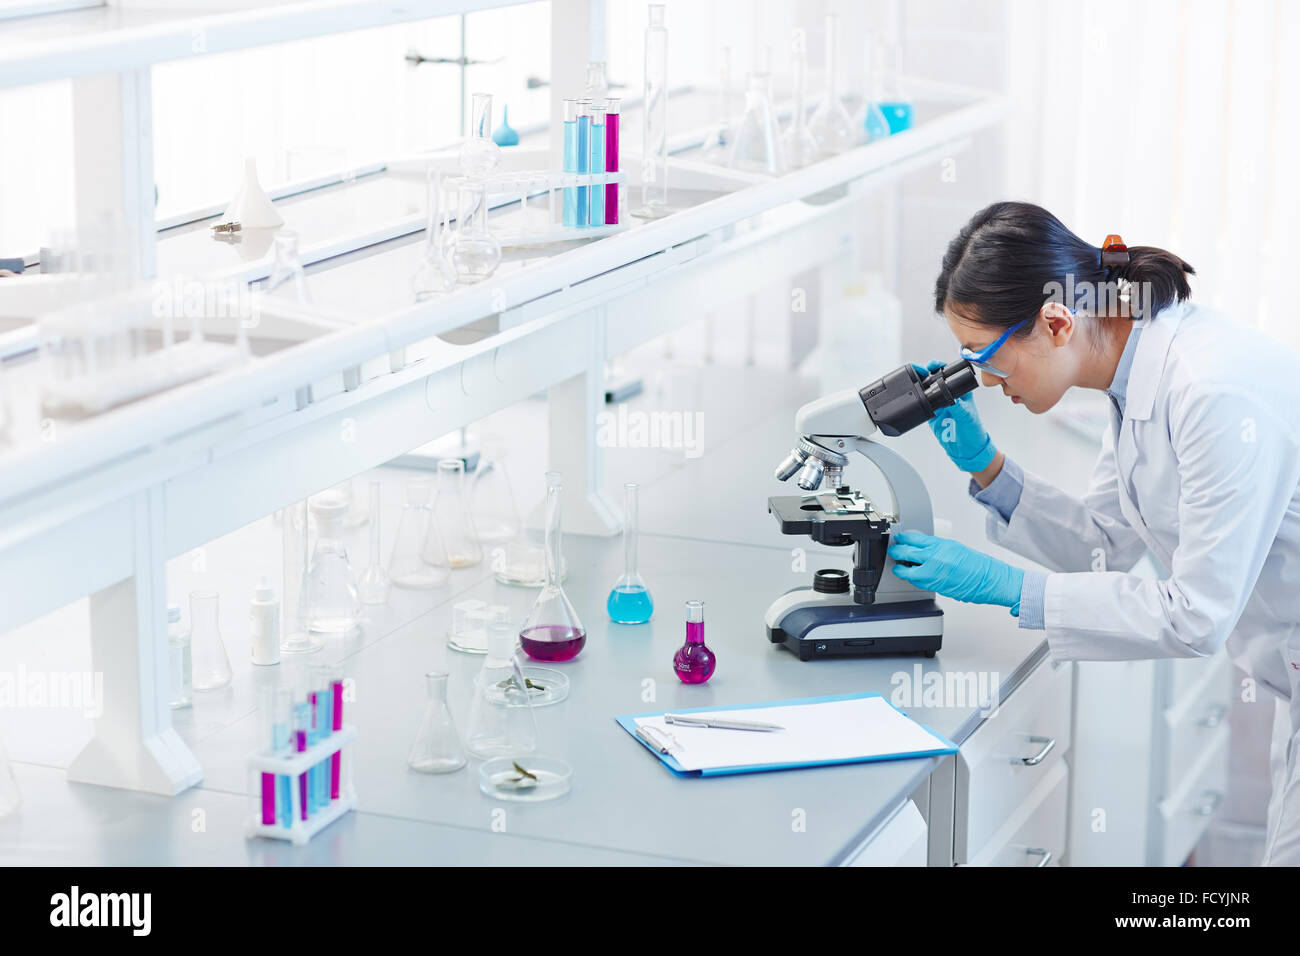 Glassware, microscope and clipboard in scientific laboratory - Stock Image